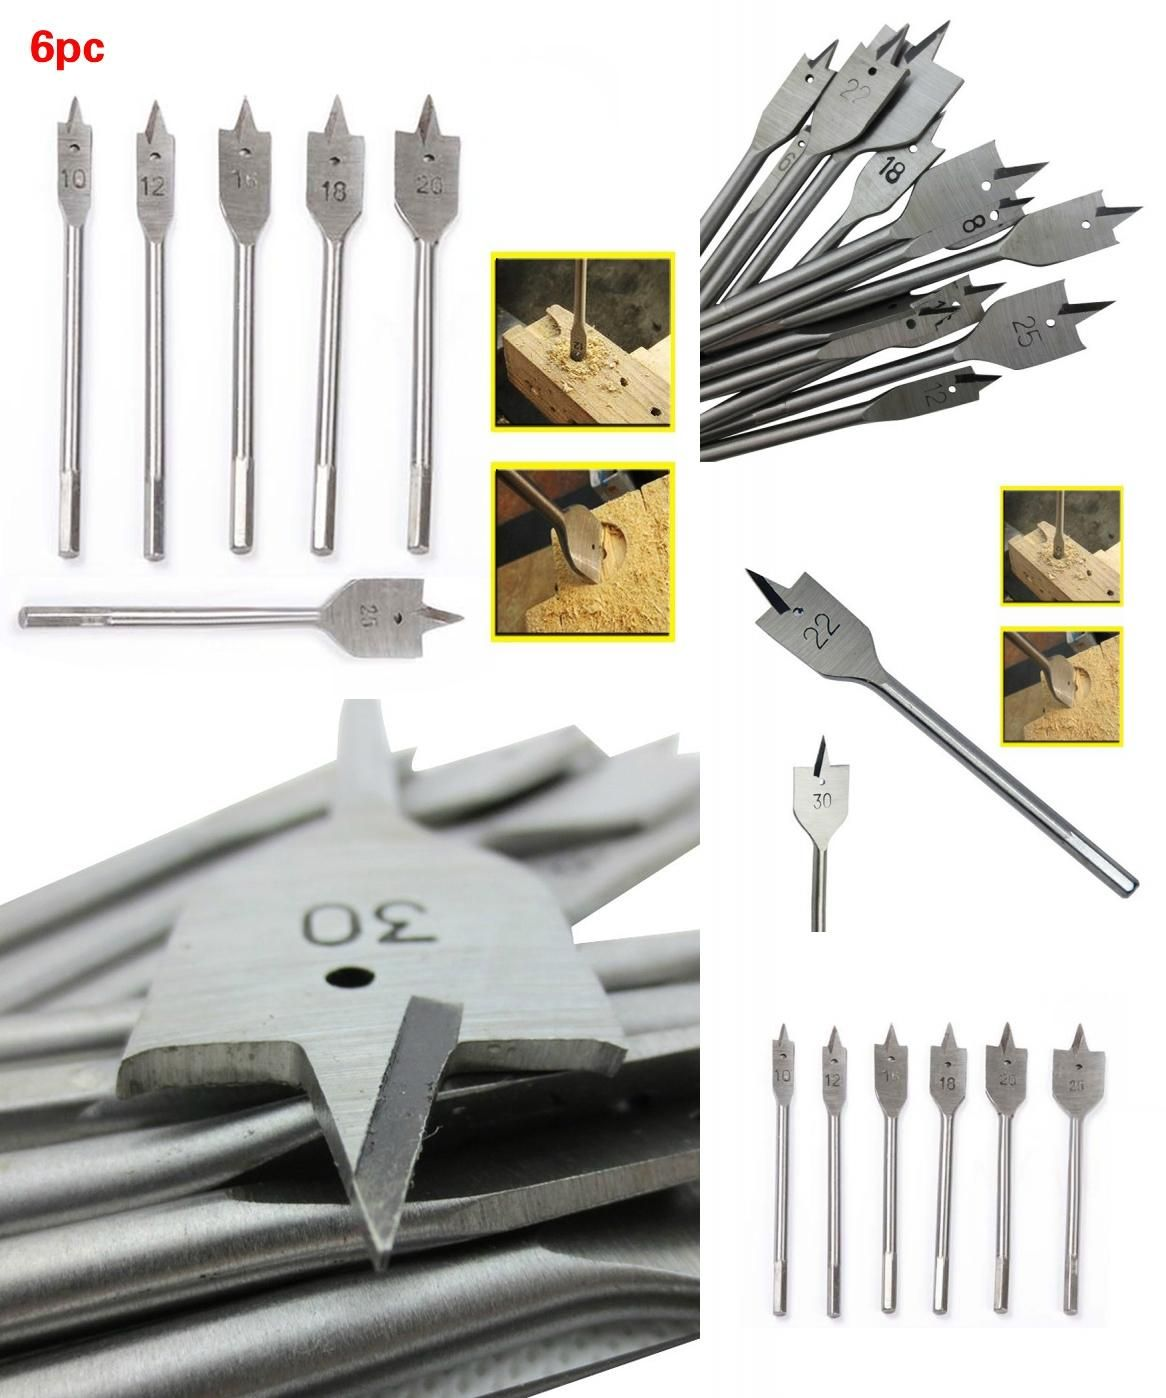 Visit To Buy Diy Wood Working Tools 6pcs Quick Change Spade Paddle Flat Wood Boring Power Drill Bit Set Assorted Sizes 10 12 With Images Wood Diy Power Drill Drill Bits